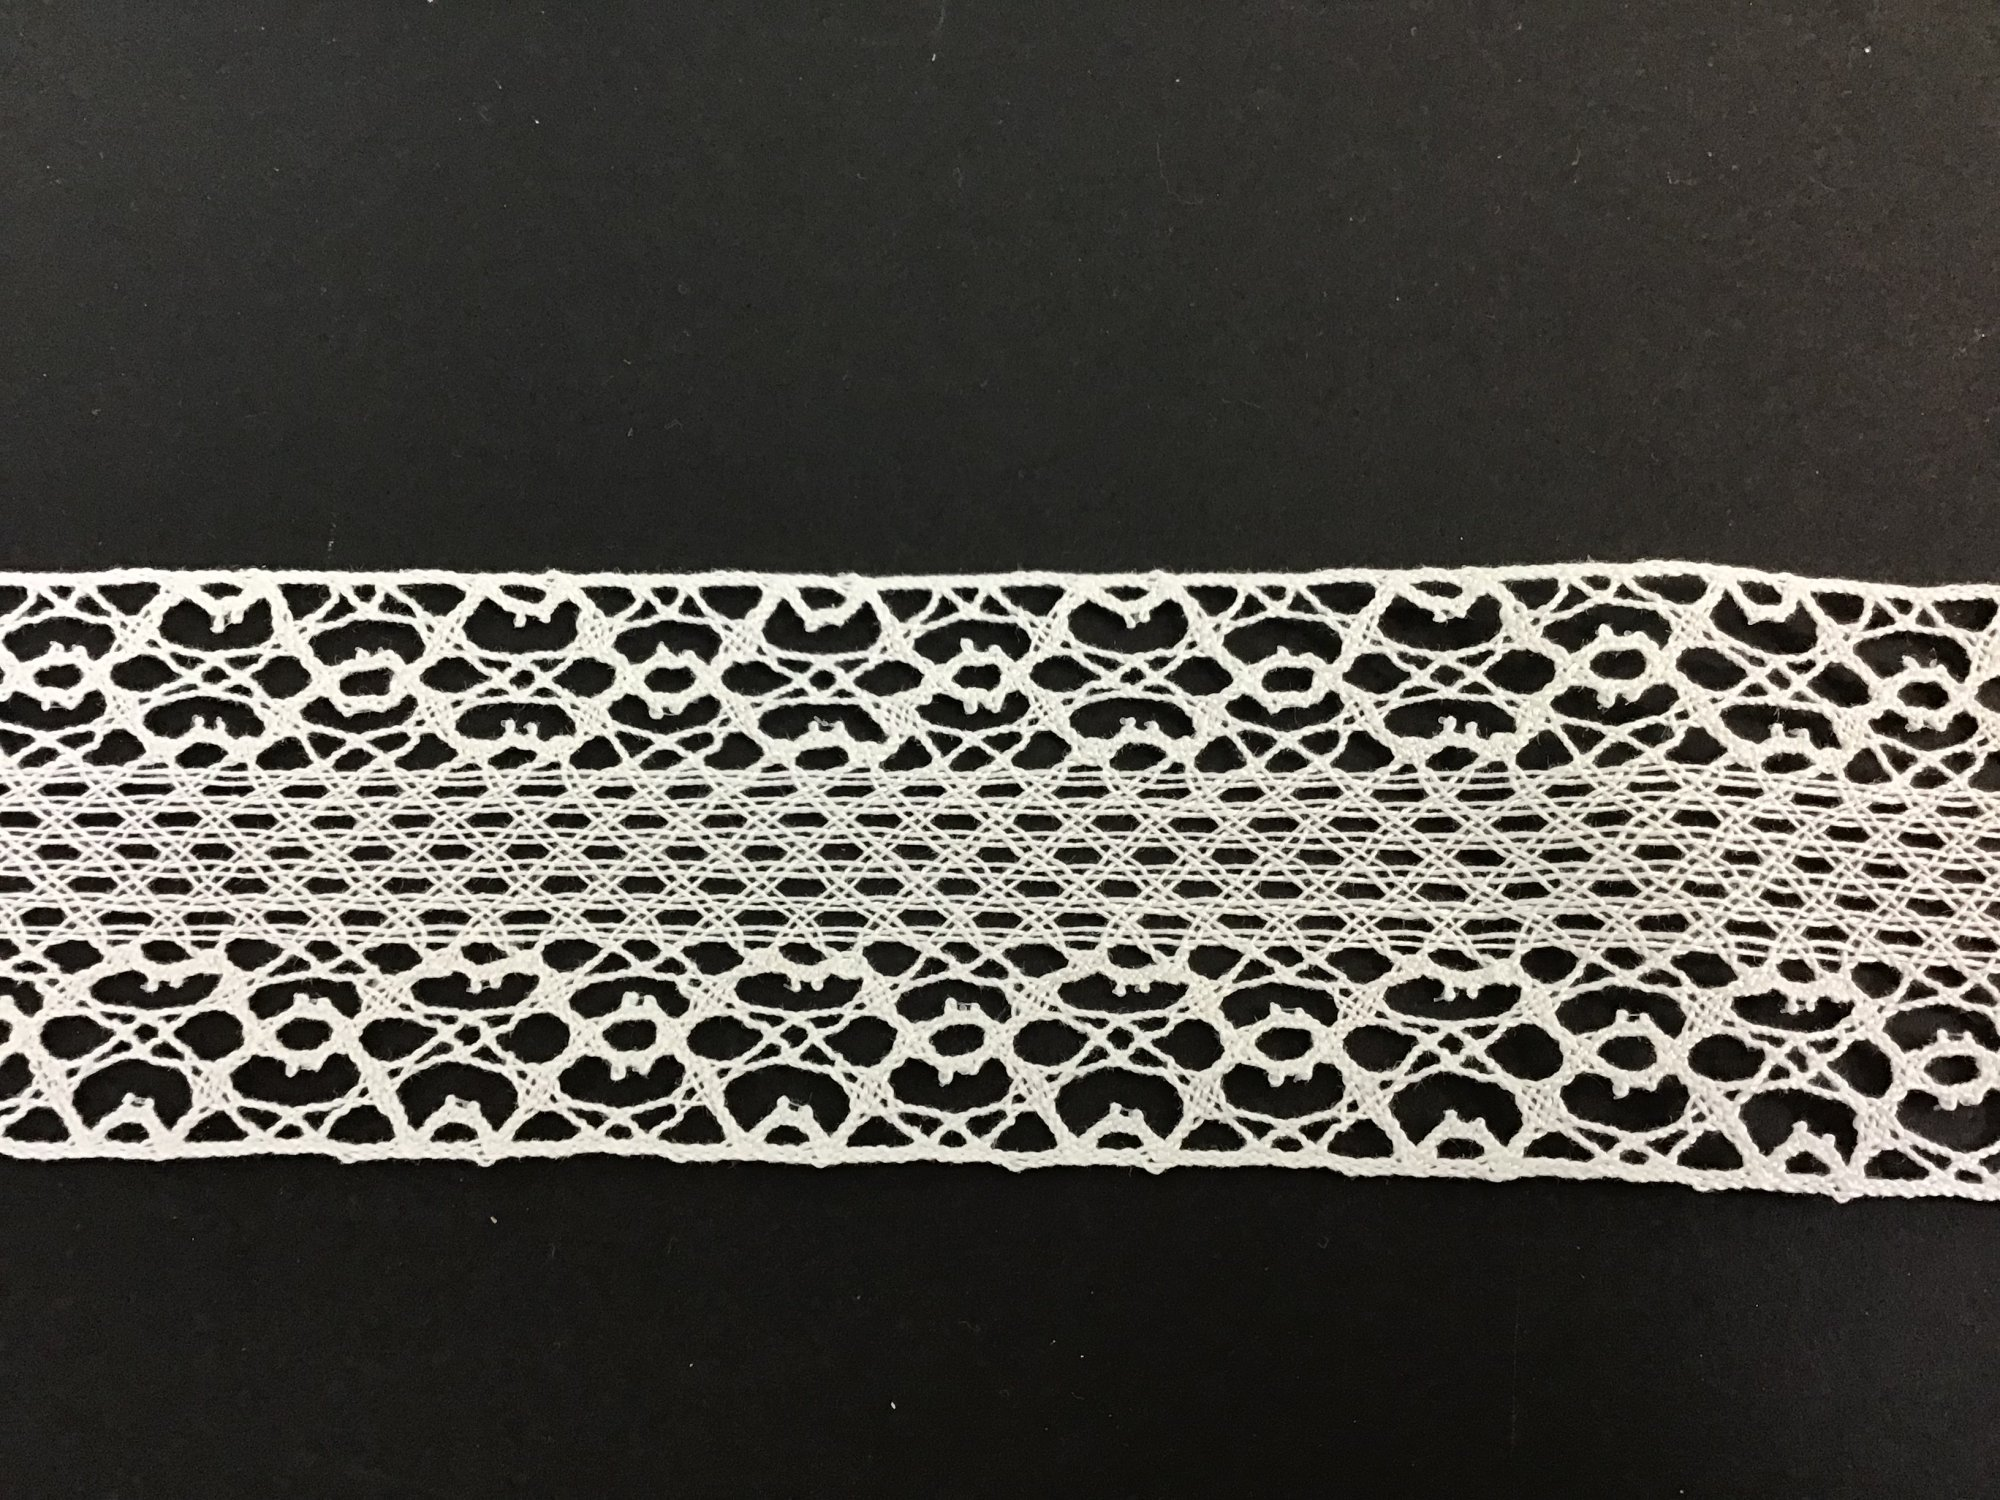 Spanish Cluney Lace Insertion 2 Inch White 37630-13